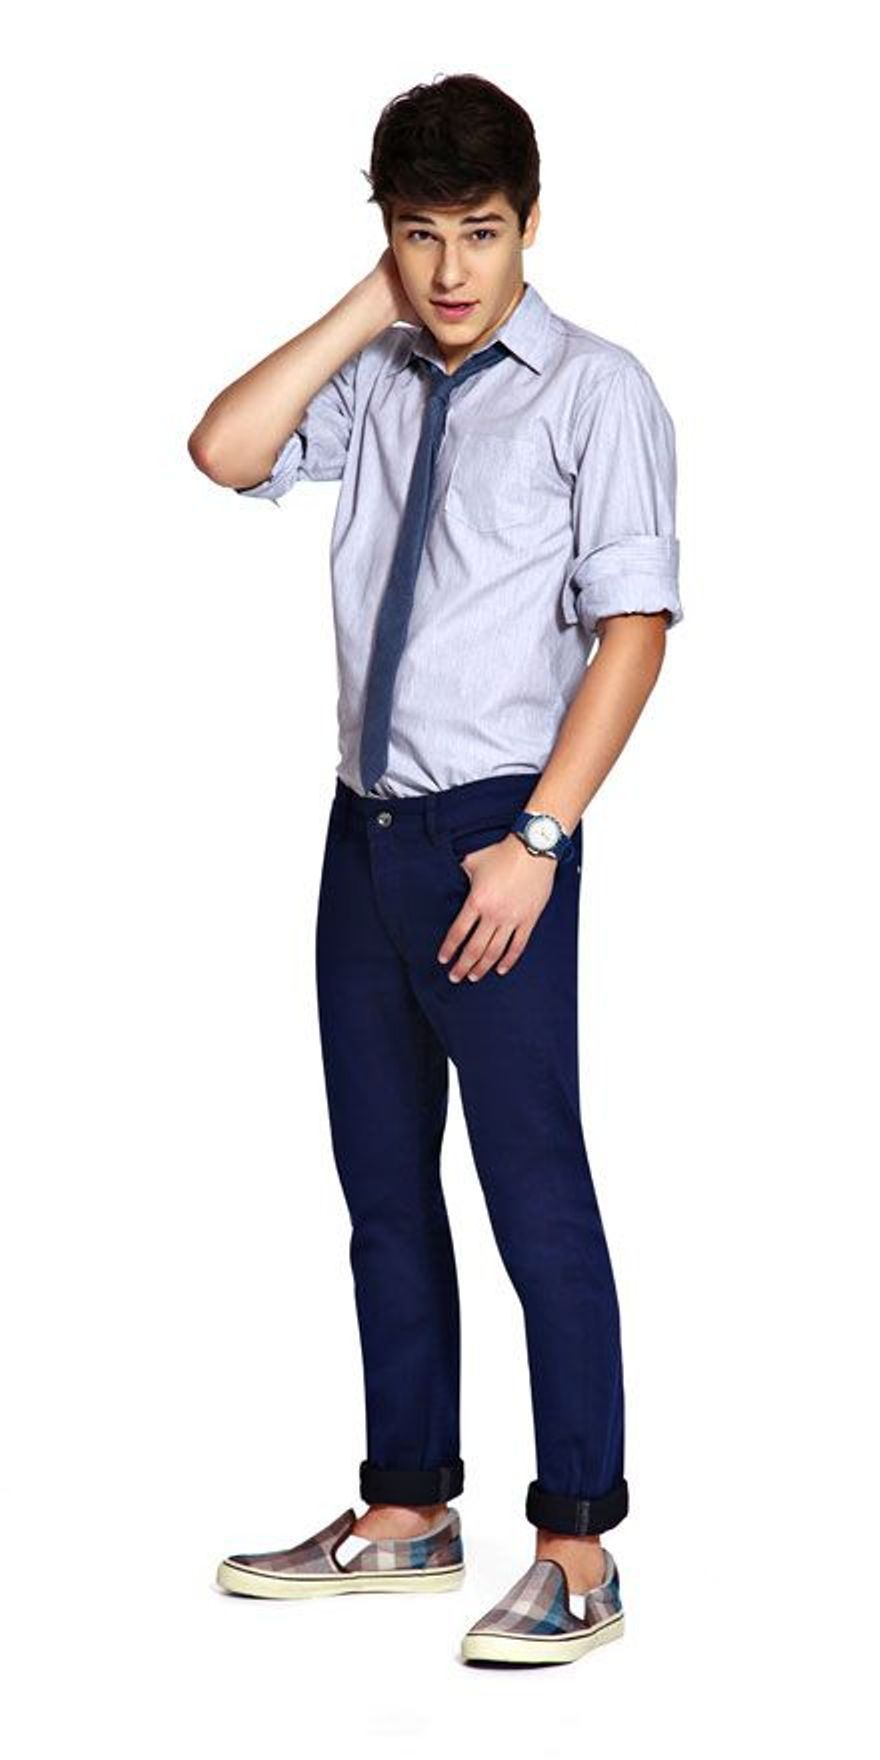 c234cf8bc 8 Trendy Guy Summer School Outfits Ideas to Copy #Men, # #guys #outfits  #school #style #summer #awesome